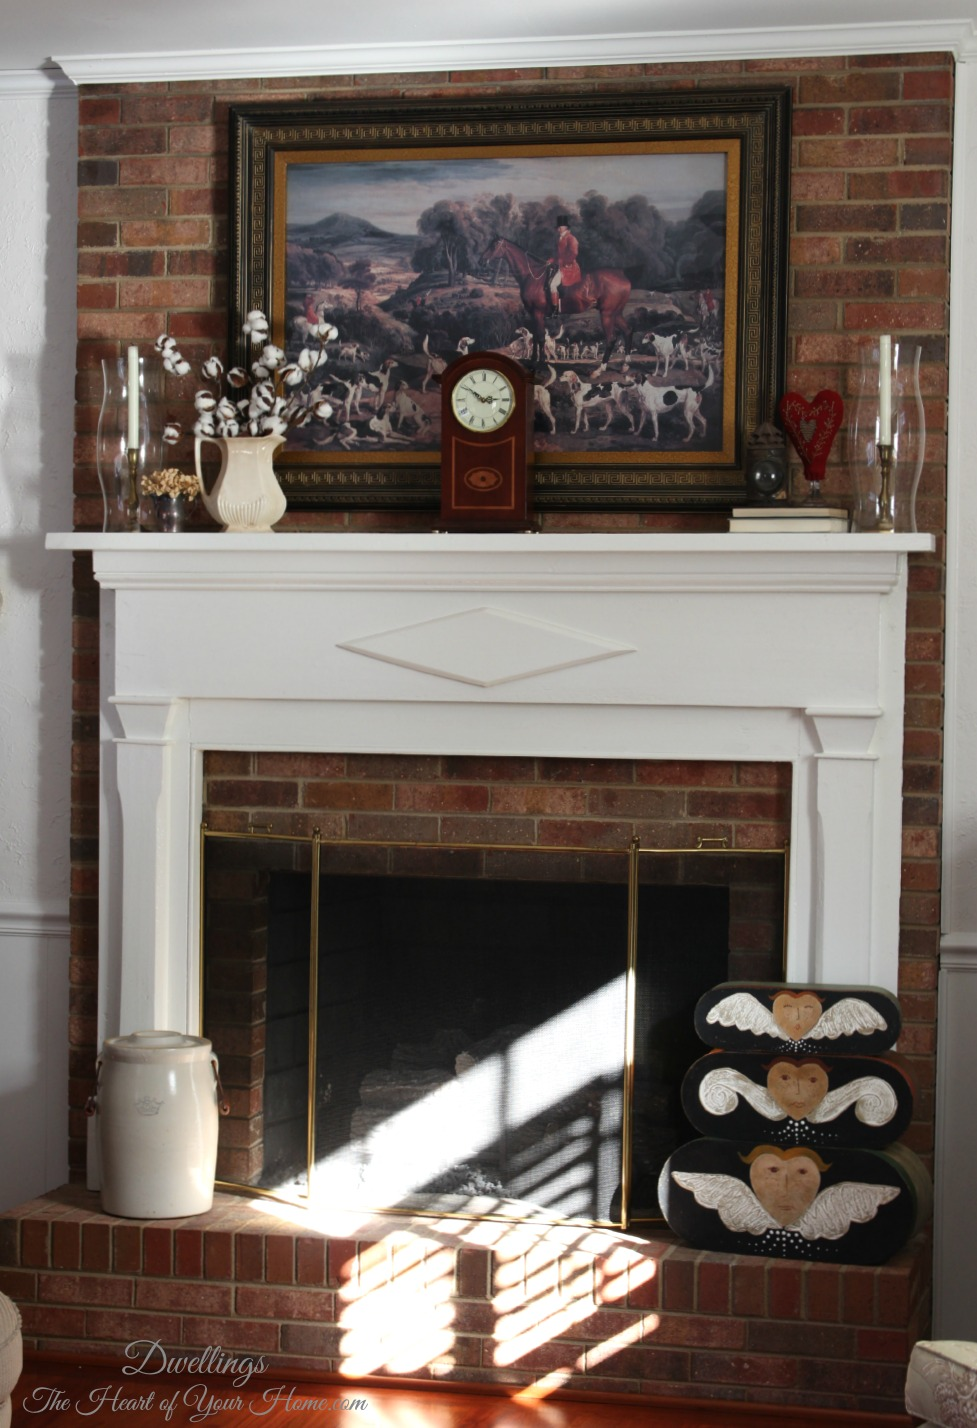 Decorating the Fireplace Mantel & Hearth | DWELLINGS-The Heart of ...